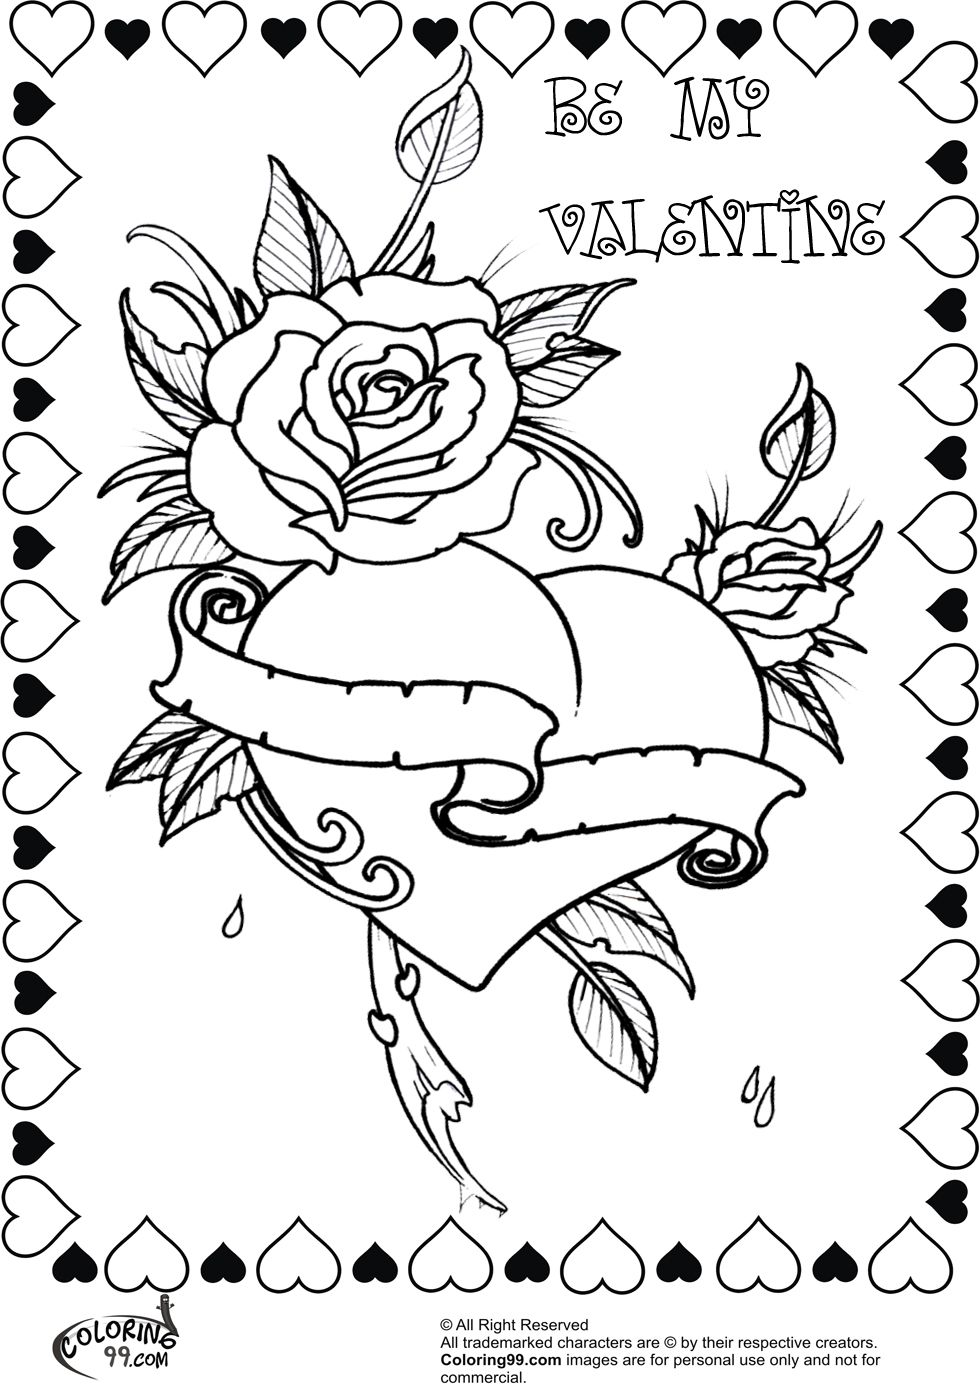 bbeautiful rose heart valentine coloring pages for adults free